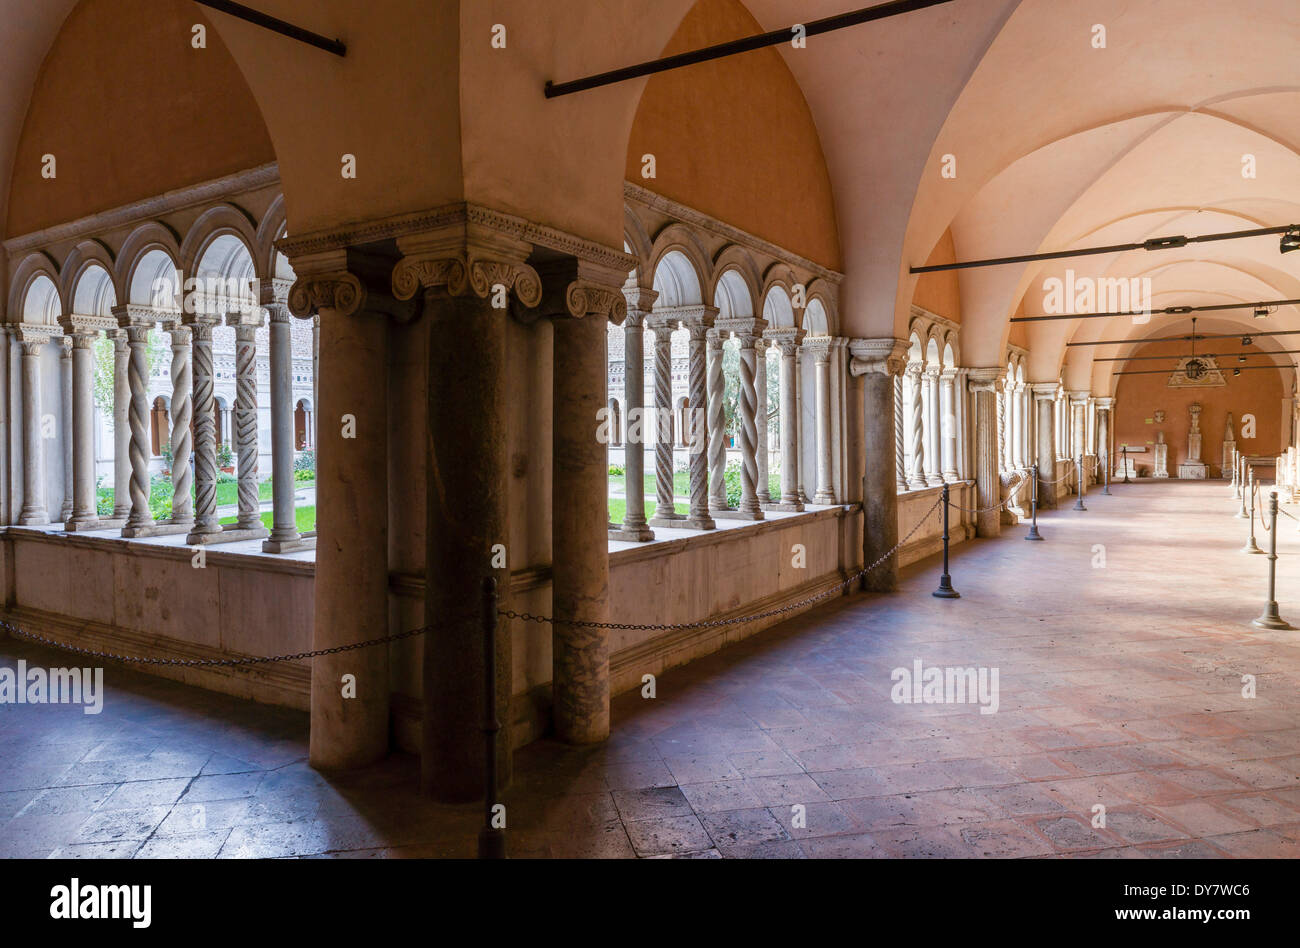 Cosmatesque ornamens, masterpiece by marble artist Vassalletto, cloister of the Basilica of St. John Lateran - Stock Image